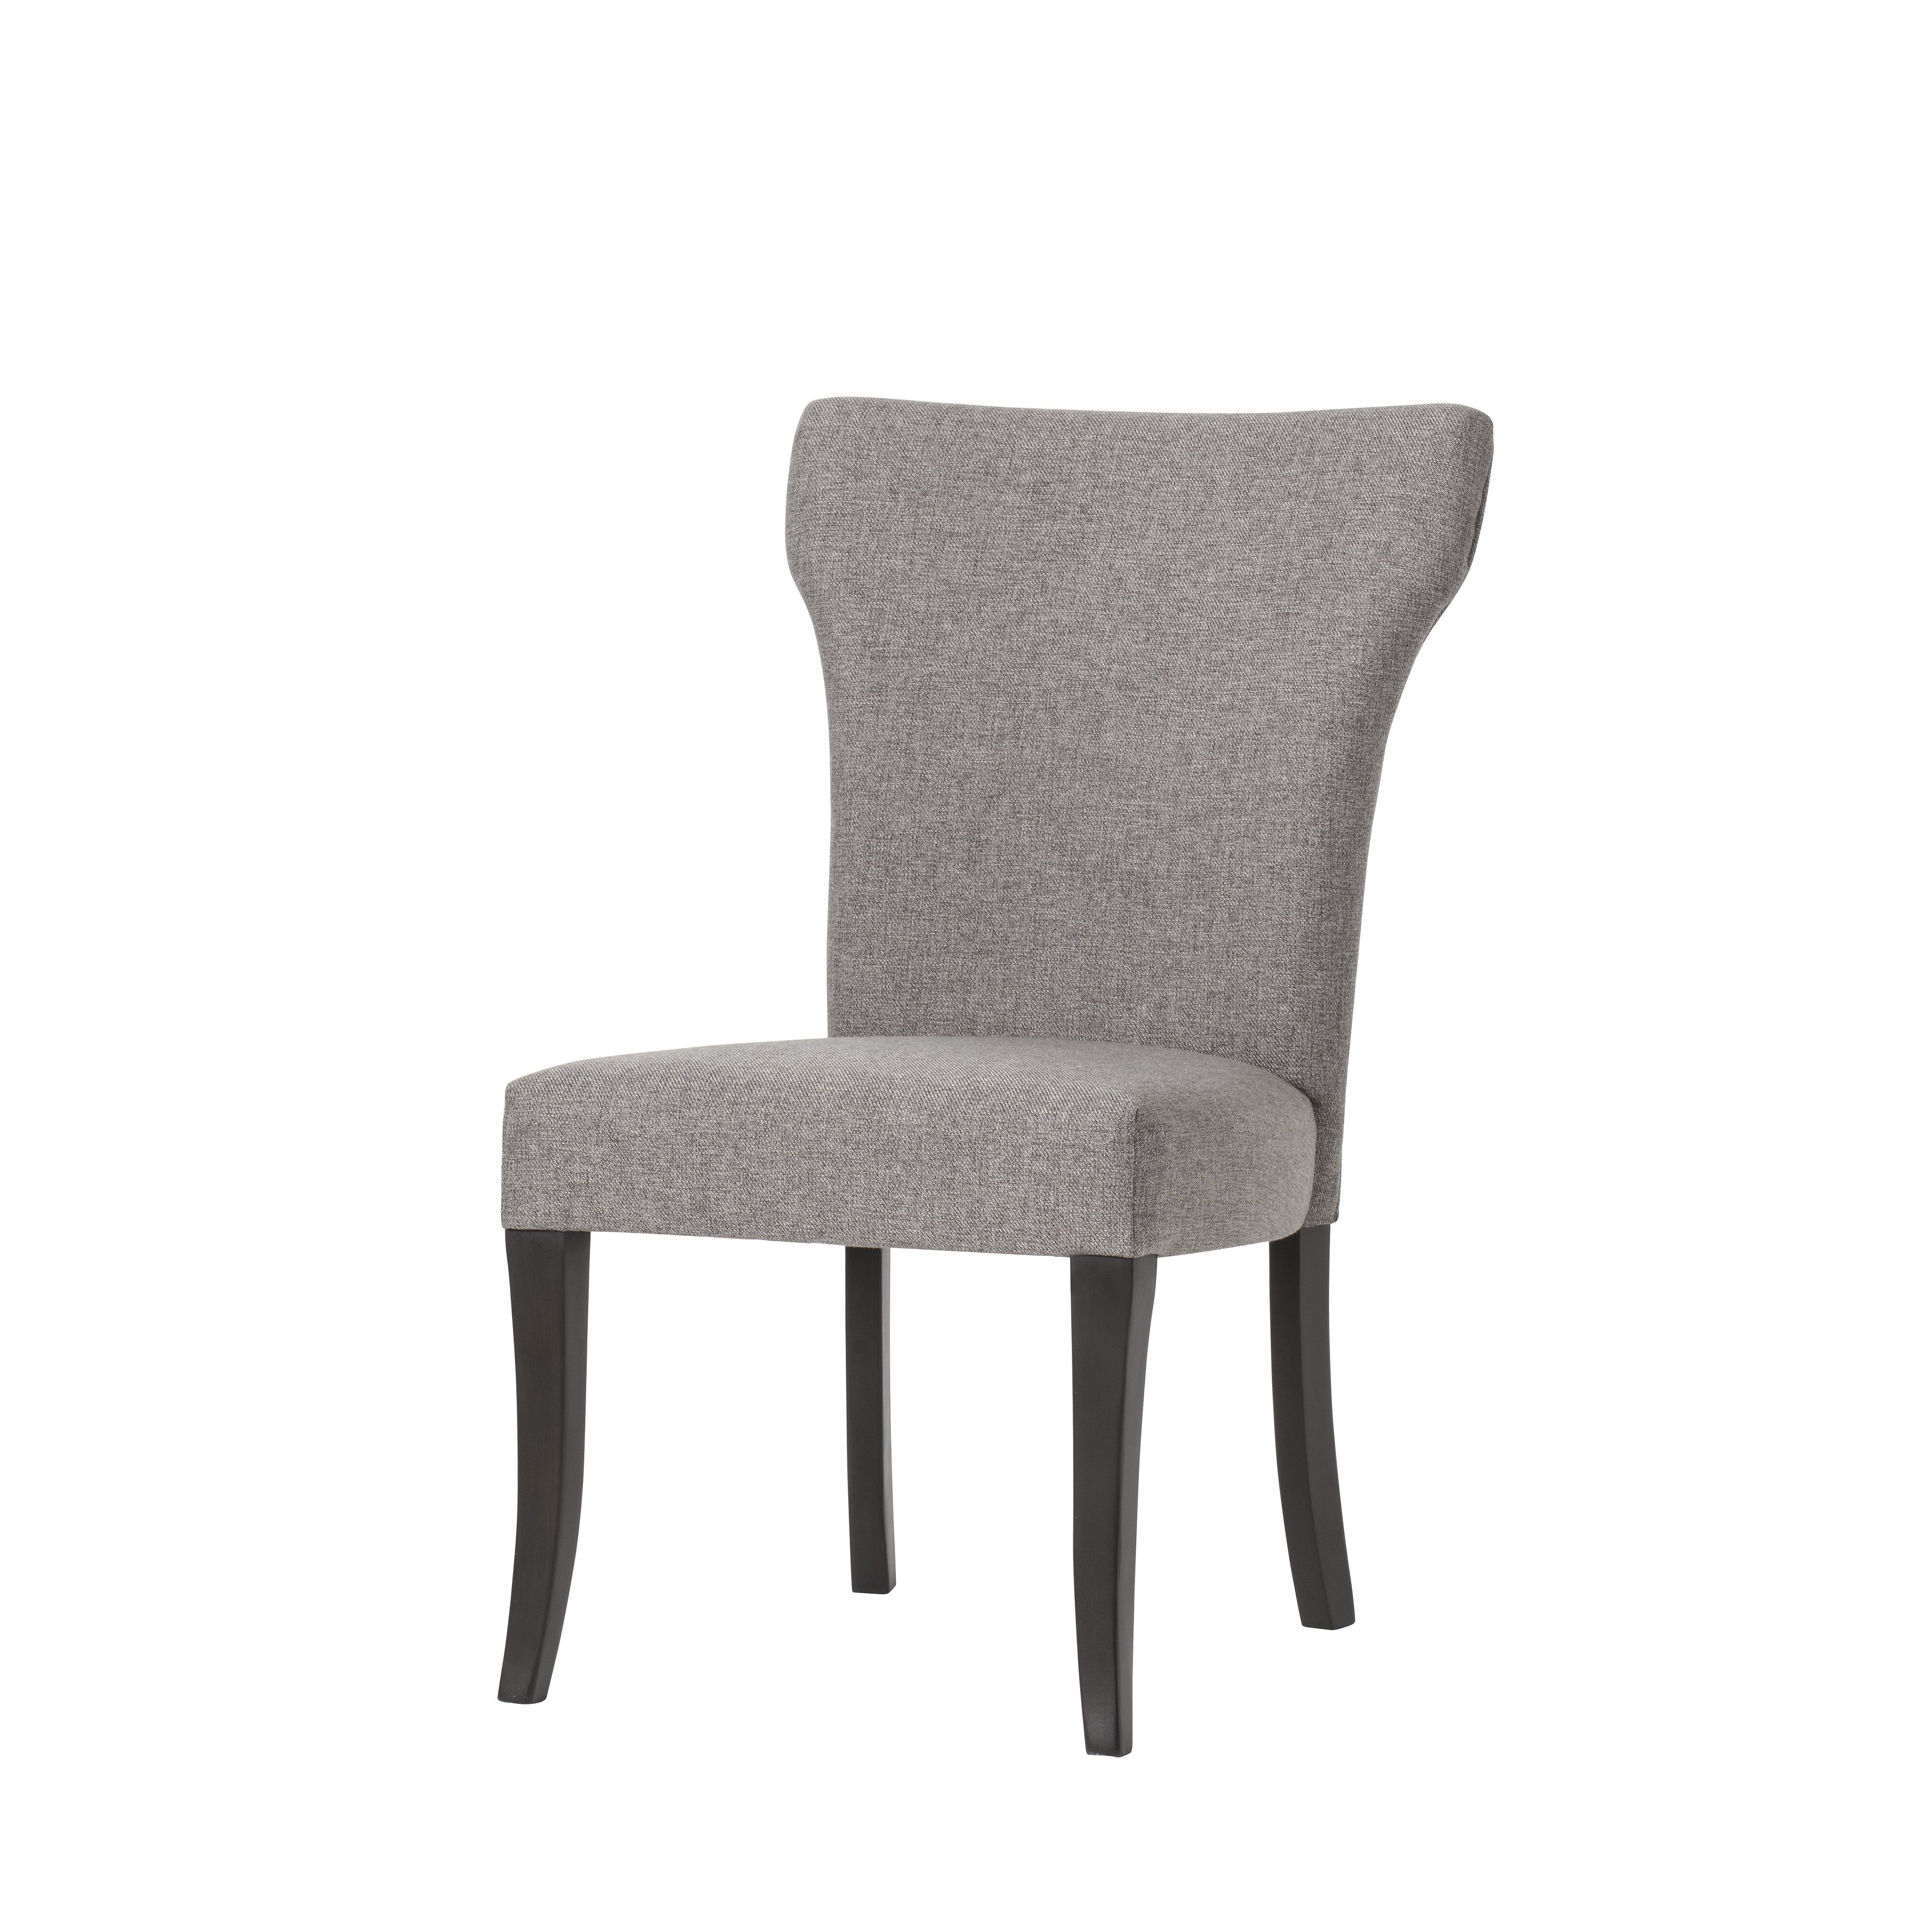 Excellent Portland Upholstered Dining Chair Andrewgaddart Wooden Chair Designs For Living Room Andrewgaddartcom